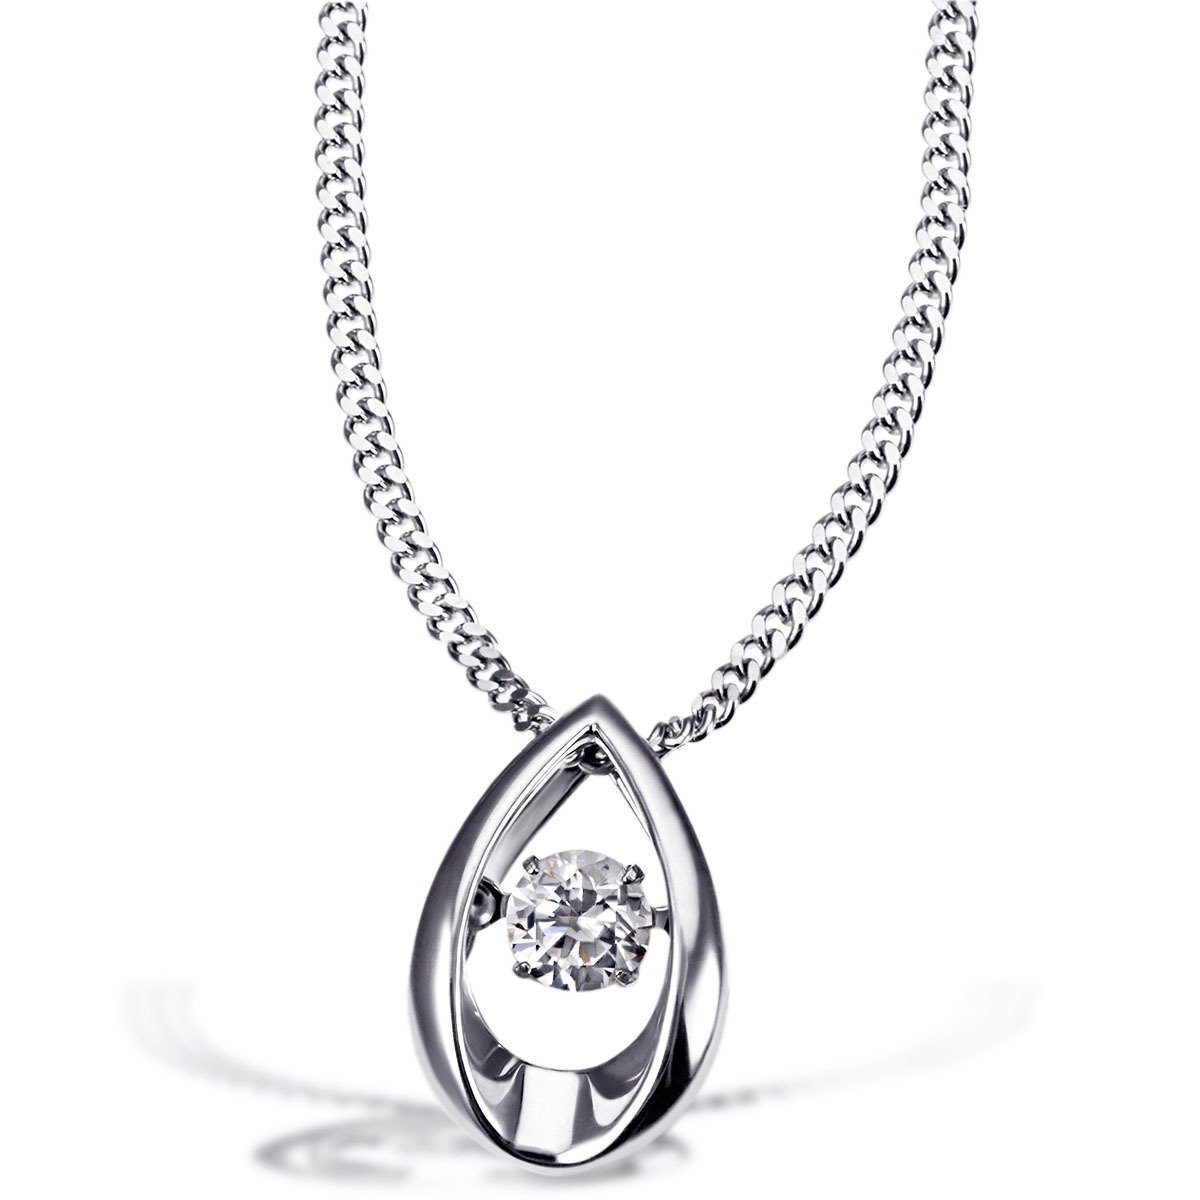 goldmaid Collier 925/- Sterlingsilber 1 Zirkonia